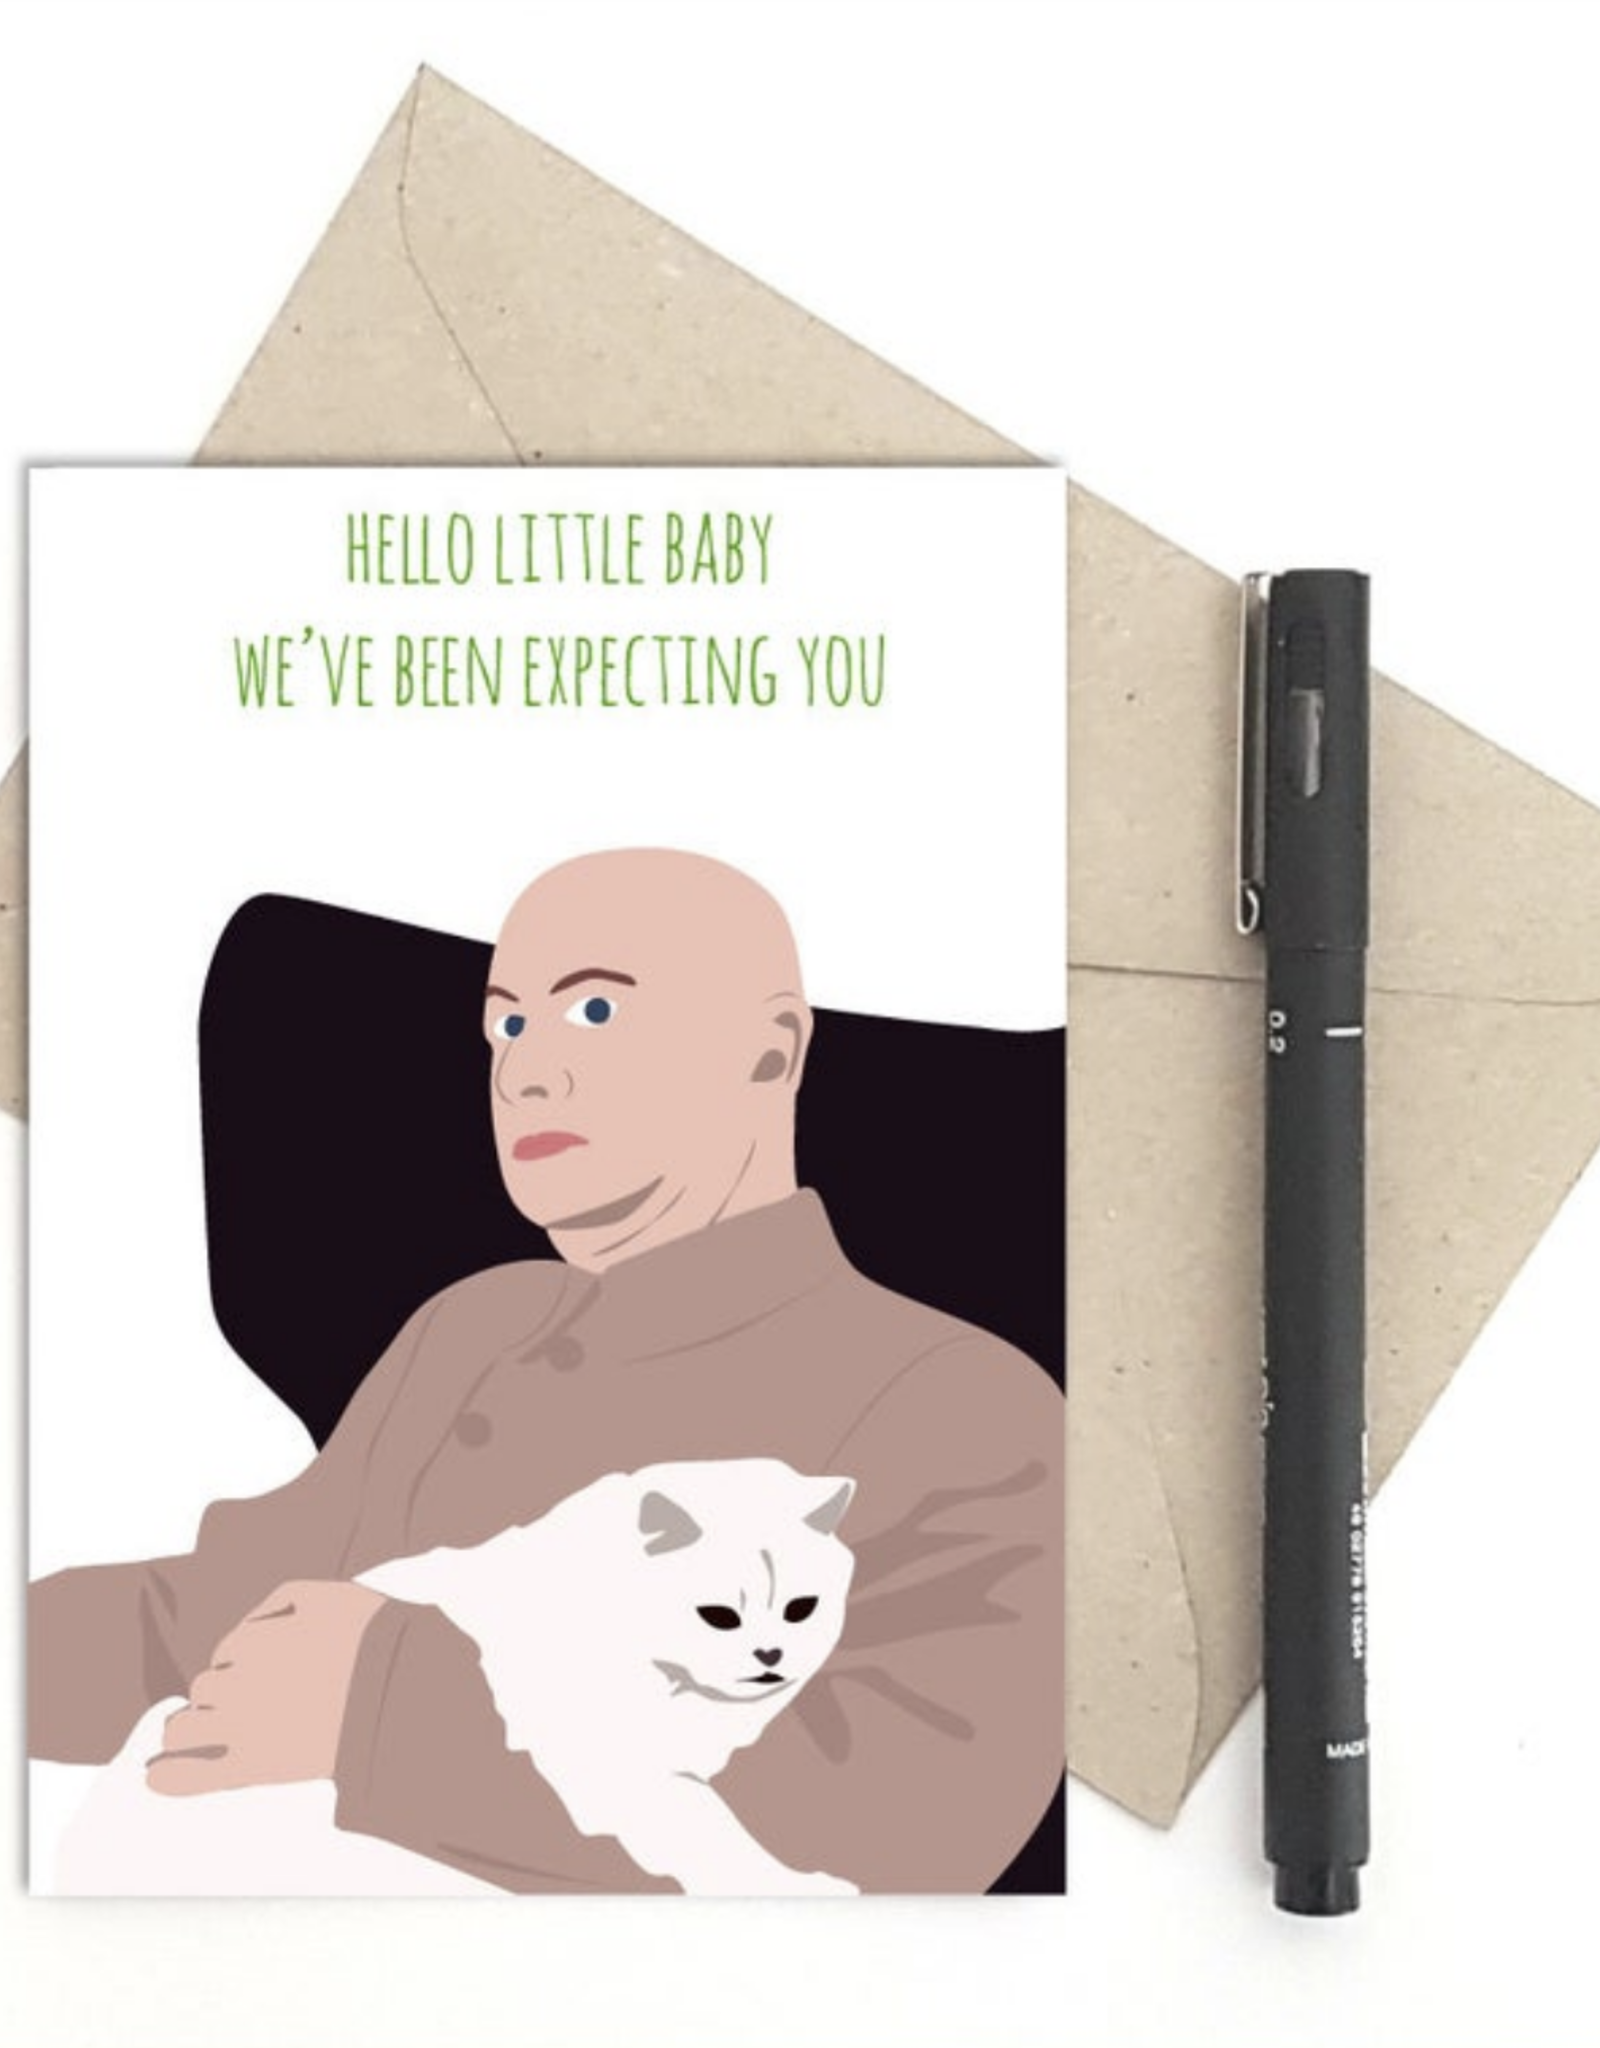 Hello Little Baby, We've Been Expecting You (Bond Villian 007) Greeting Card